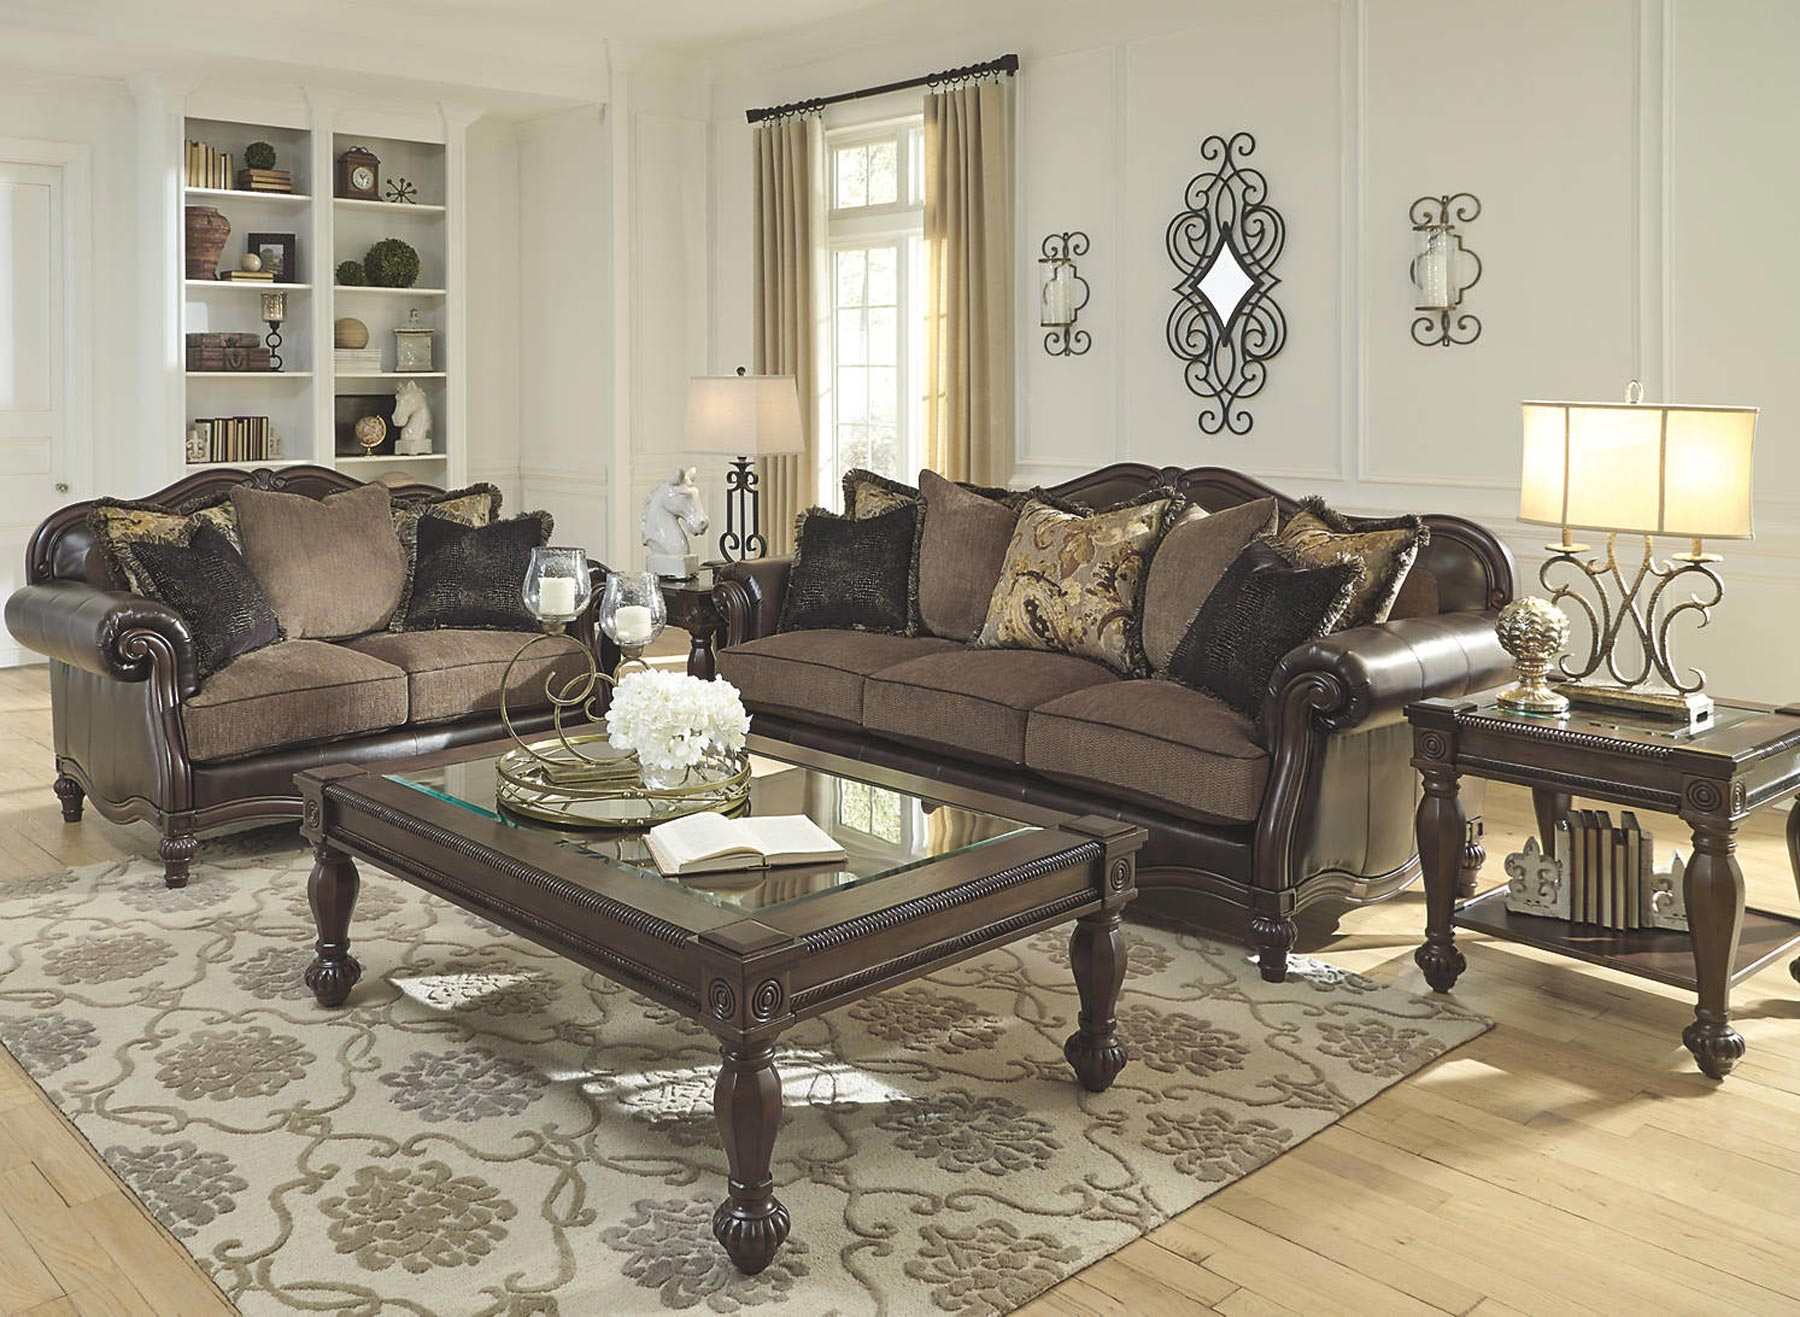 Winnsboro 3 Piece Living Room Set Gonzalez Furniture